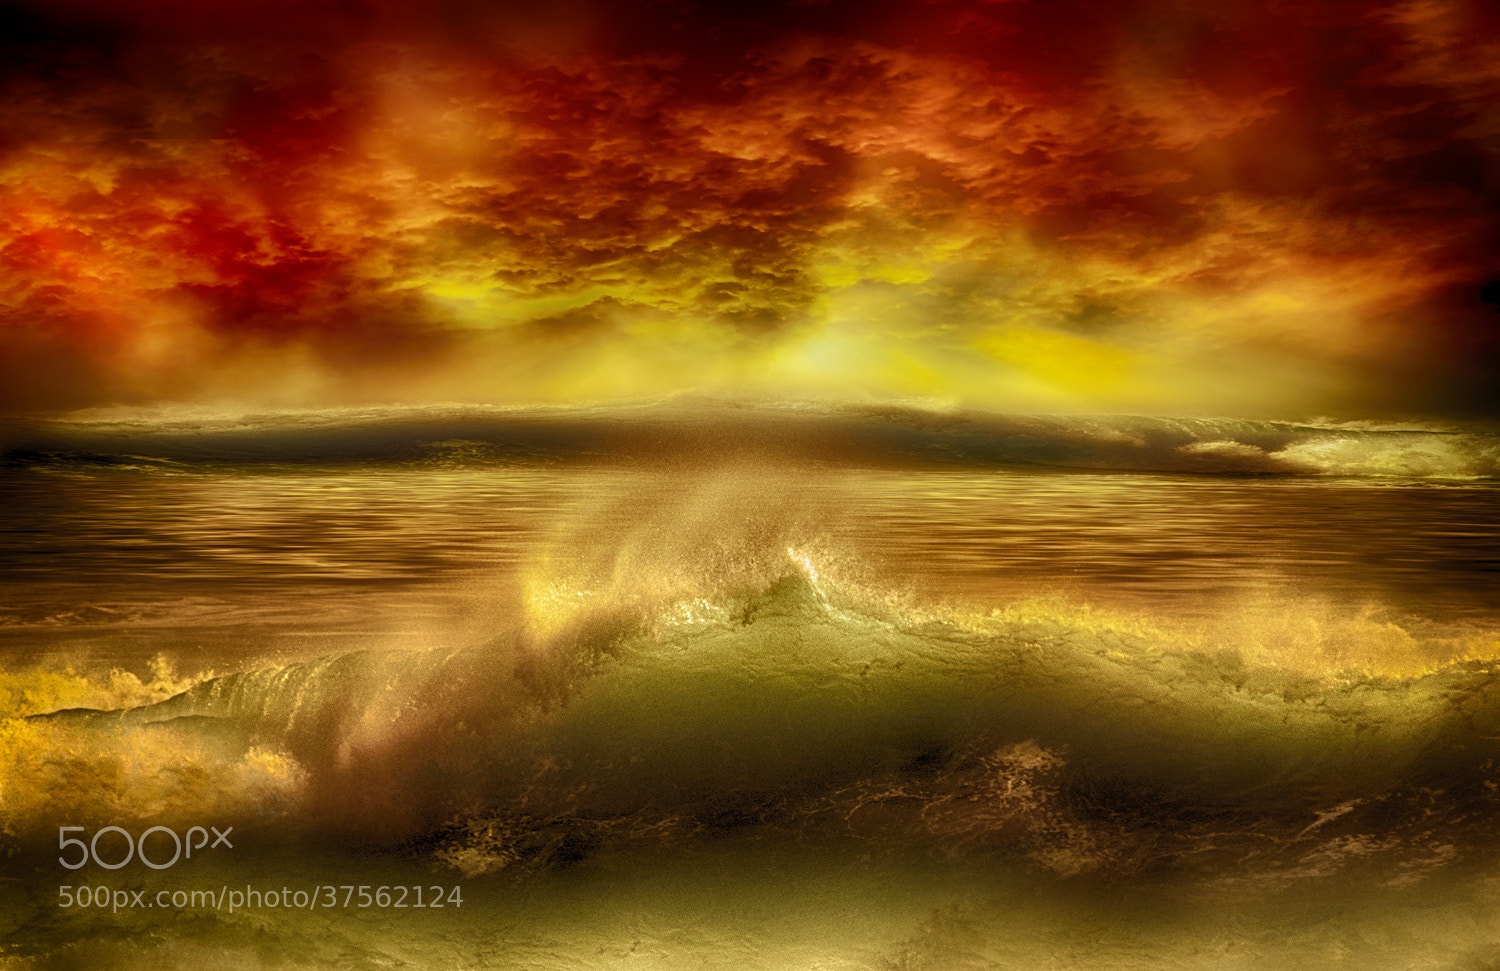 Photograph Wave sunset by michael agliolo on 500px